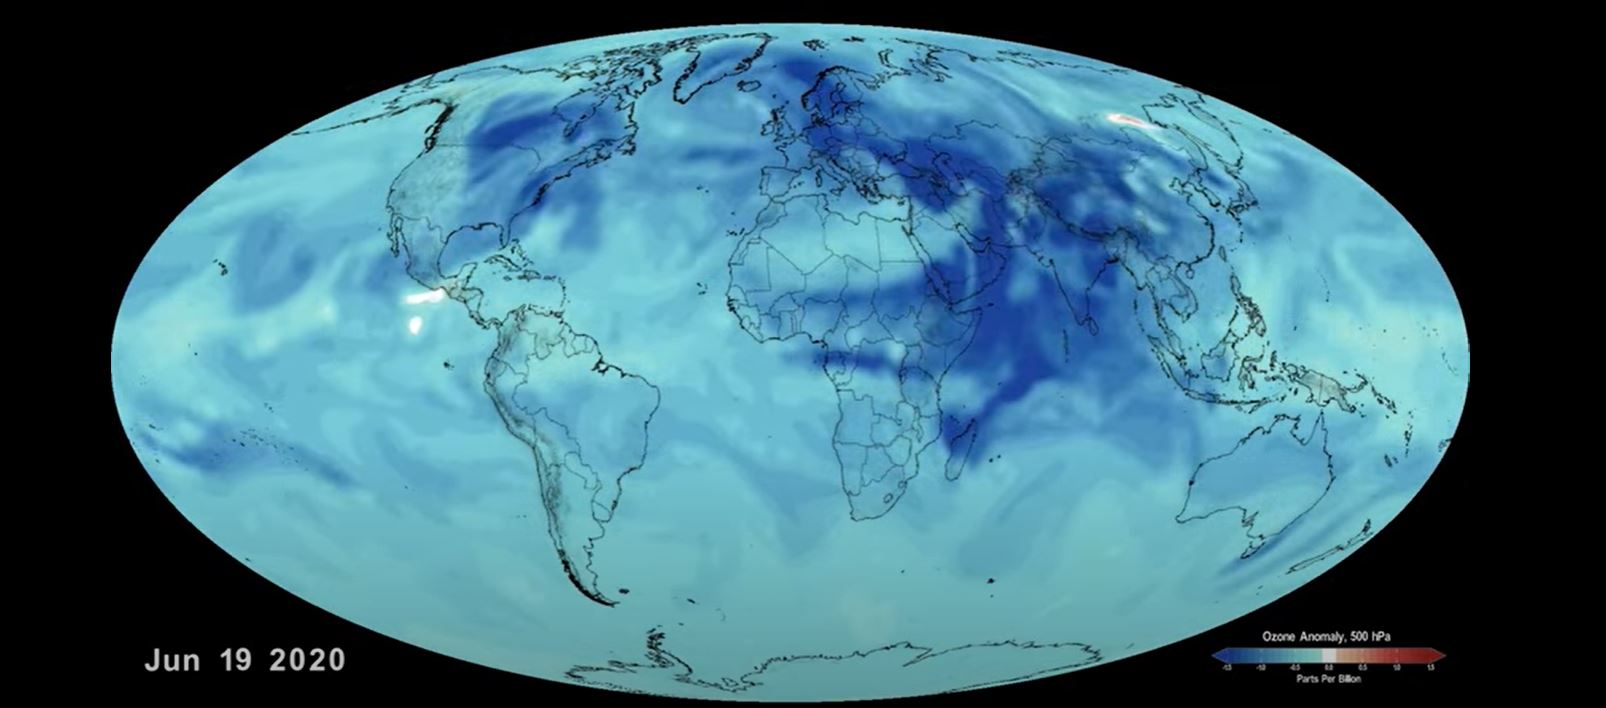 A still from a visualization showing the decrease of atmospheric ozone during the Covid-19 pandemic.